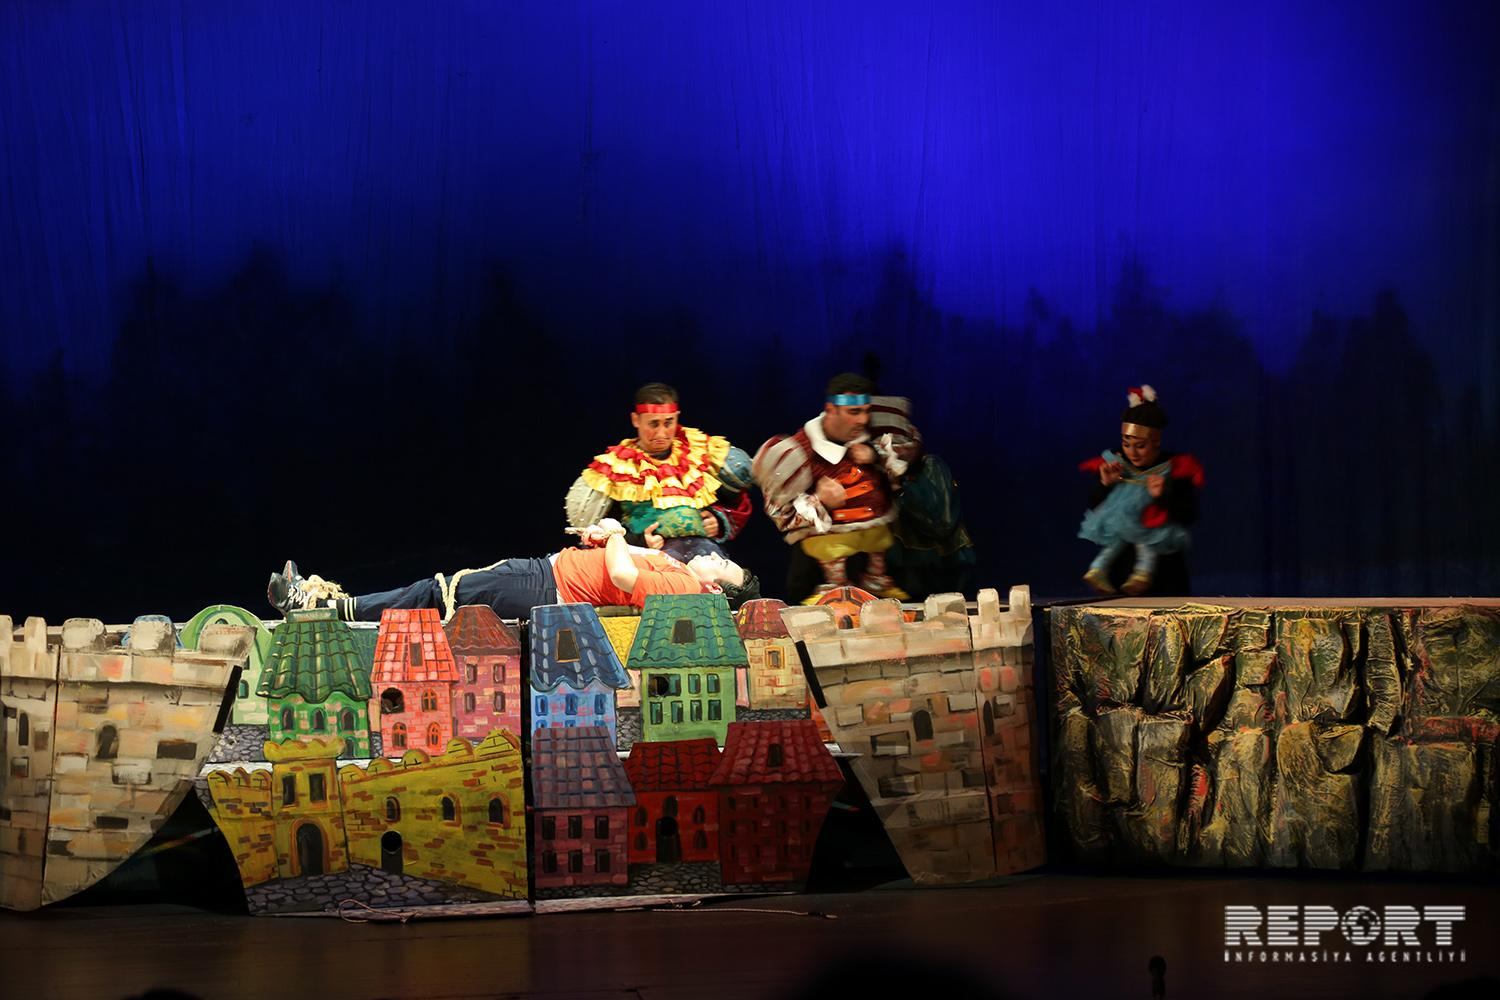 Theater of Young Spectators premieres 'Gulliver in the land of lilliputs'